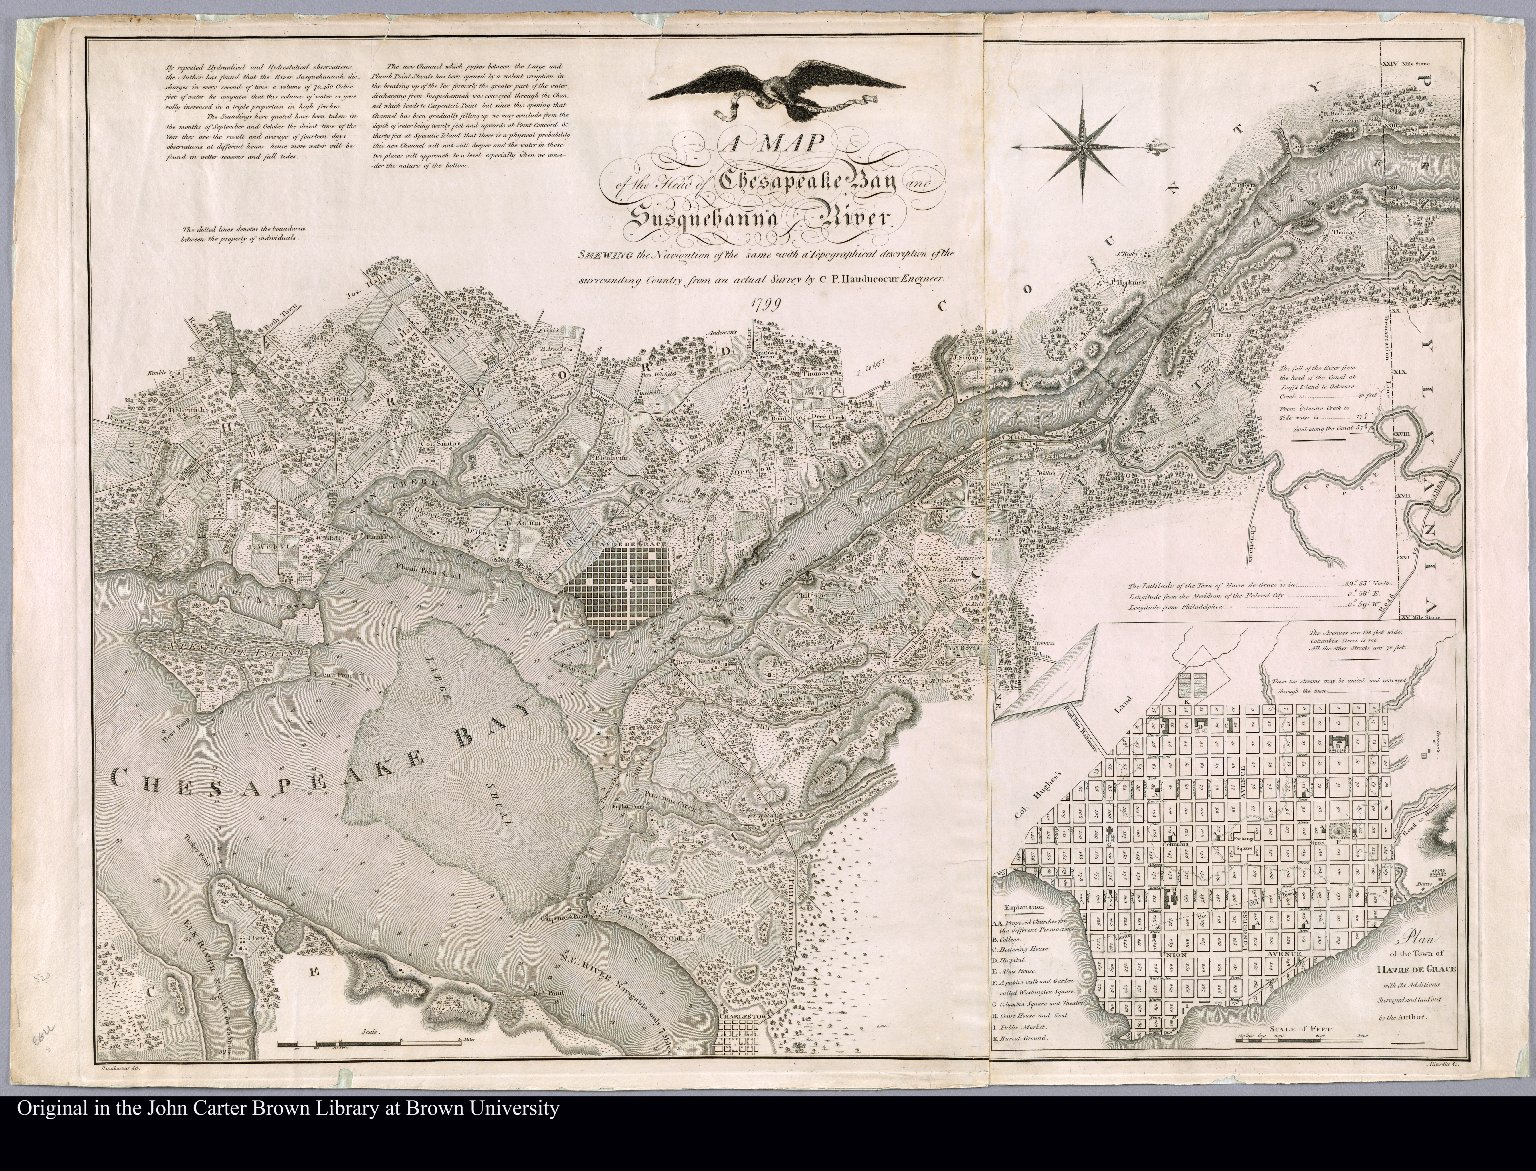 Susquehanna River Map on shenandoah river map, chesapeake bay, sacramento river map, lake erie, pee dee river map, hudson river, ohio river, pawcatuck river map, missouri river, red river, allegheny river map, scioto river map, colorado river, mississippi river, monongahela river, james river, allegheny river, potomac river, columbia river map, snake river, city island, columbia river, connecticut river map, adirondack mountains, san joaquin river map, delaware water gap, roanoke river map, seneca river map, hudson river map, tombigbee river map, delaware river, saskatchewan river map, juniata river map, connecticut river, potomac river map, delaware river map, james river map, mohawk river map, tennessee river map,